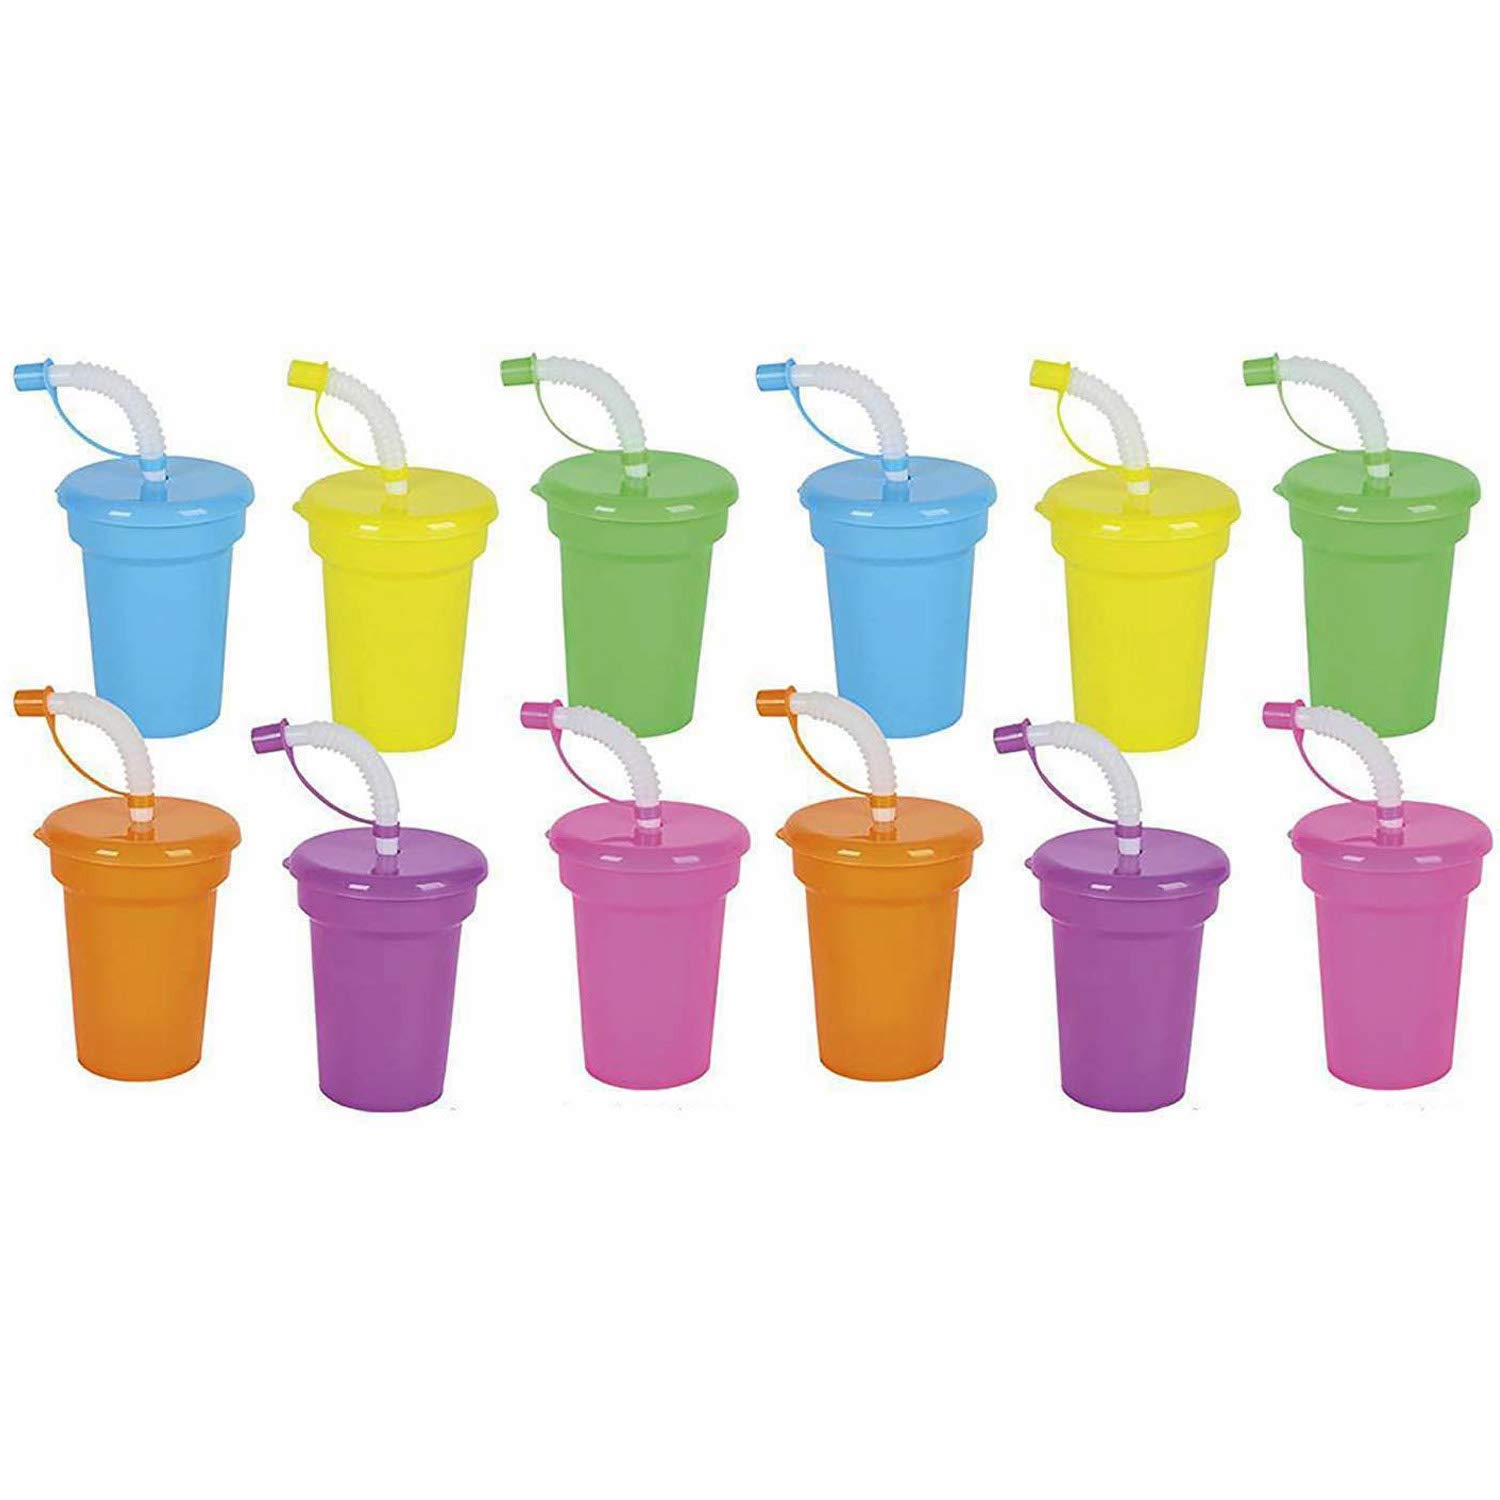 Kicko Neon Sipper Cups - 5.5 Inches Cool and Fun Colorful Neon Spill-Proof Cup with Lid and Straw - Pack of 12 - School Events, theme Parties, and Birthday Celebrations - Party Supplies